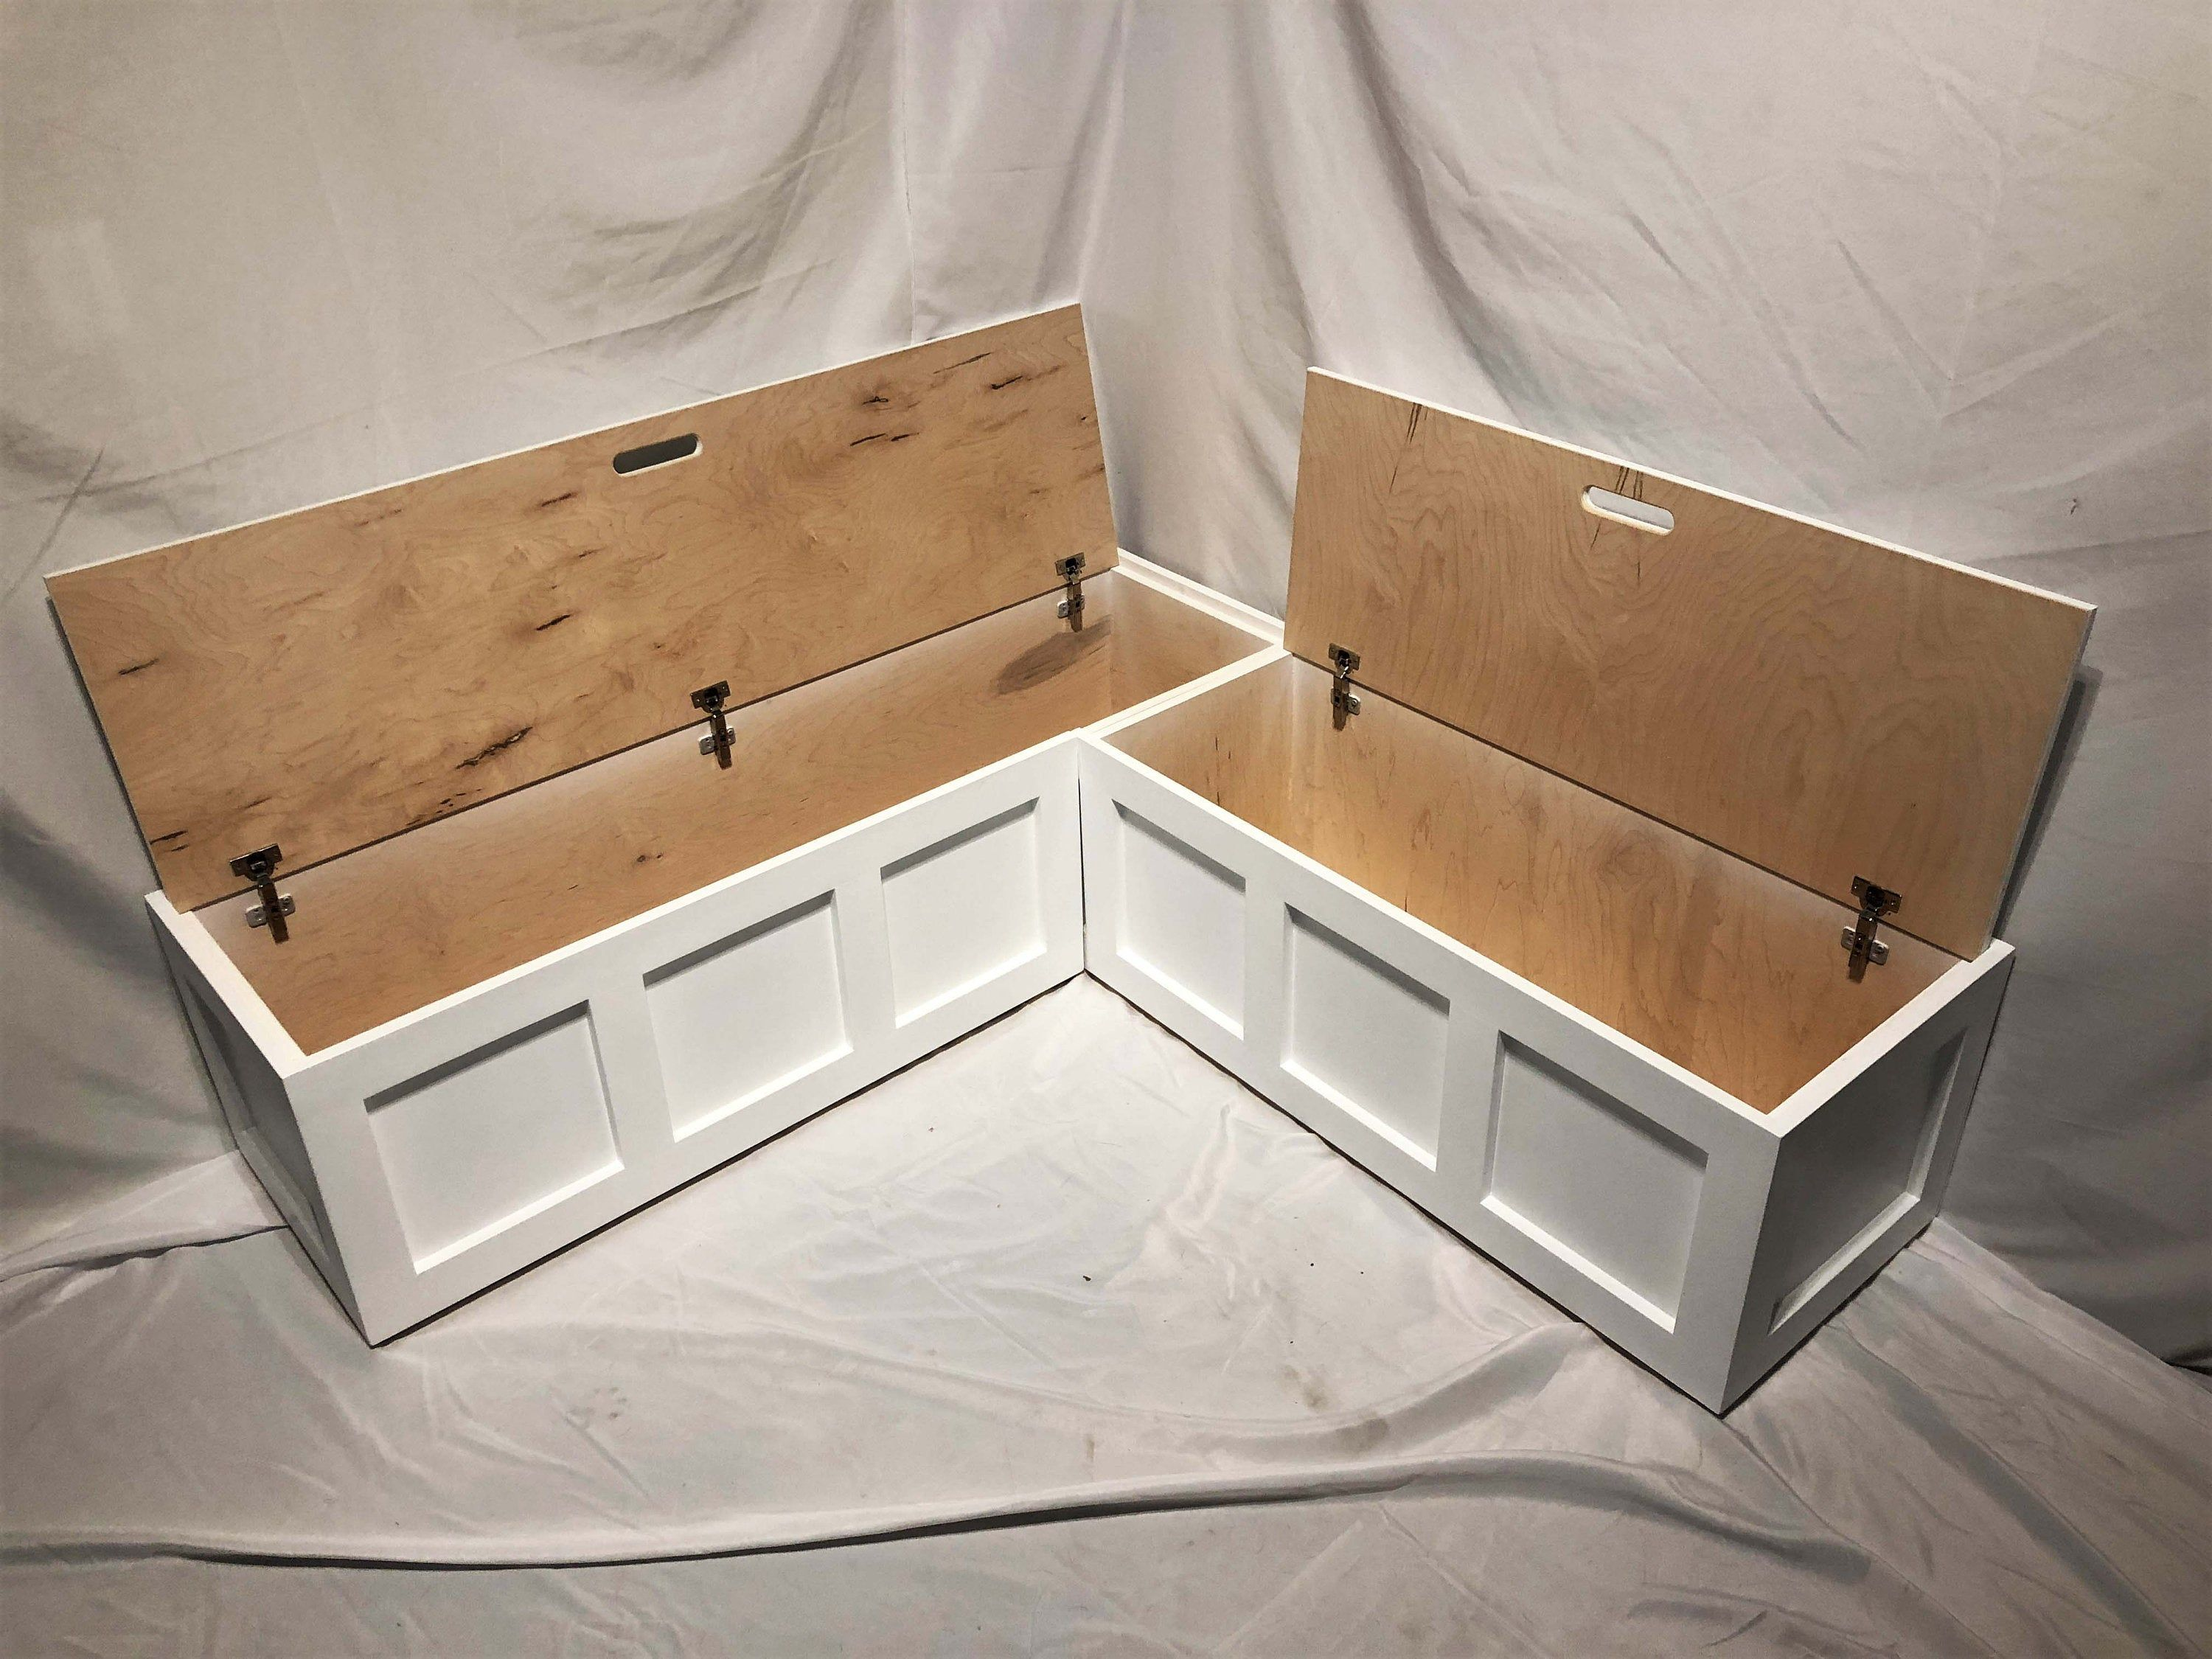 Corner Bench Set Shaker Banquette Bench Top Opening Etsy In 2020 Kitchen Nook Bench Banquette Seating In Kitchen Kitchen Corner Bench